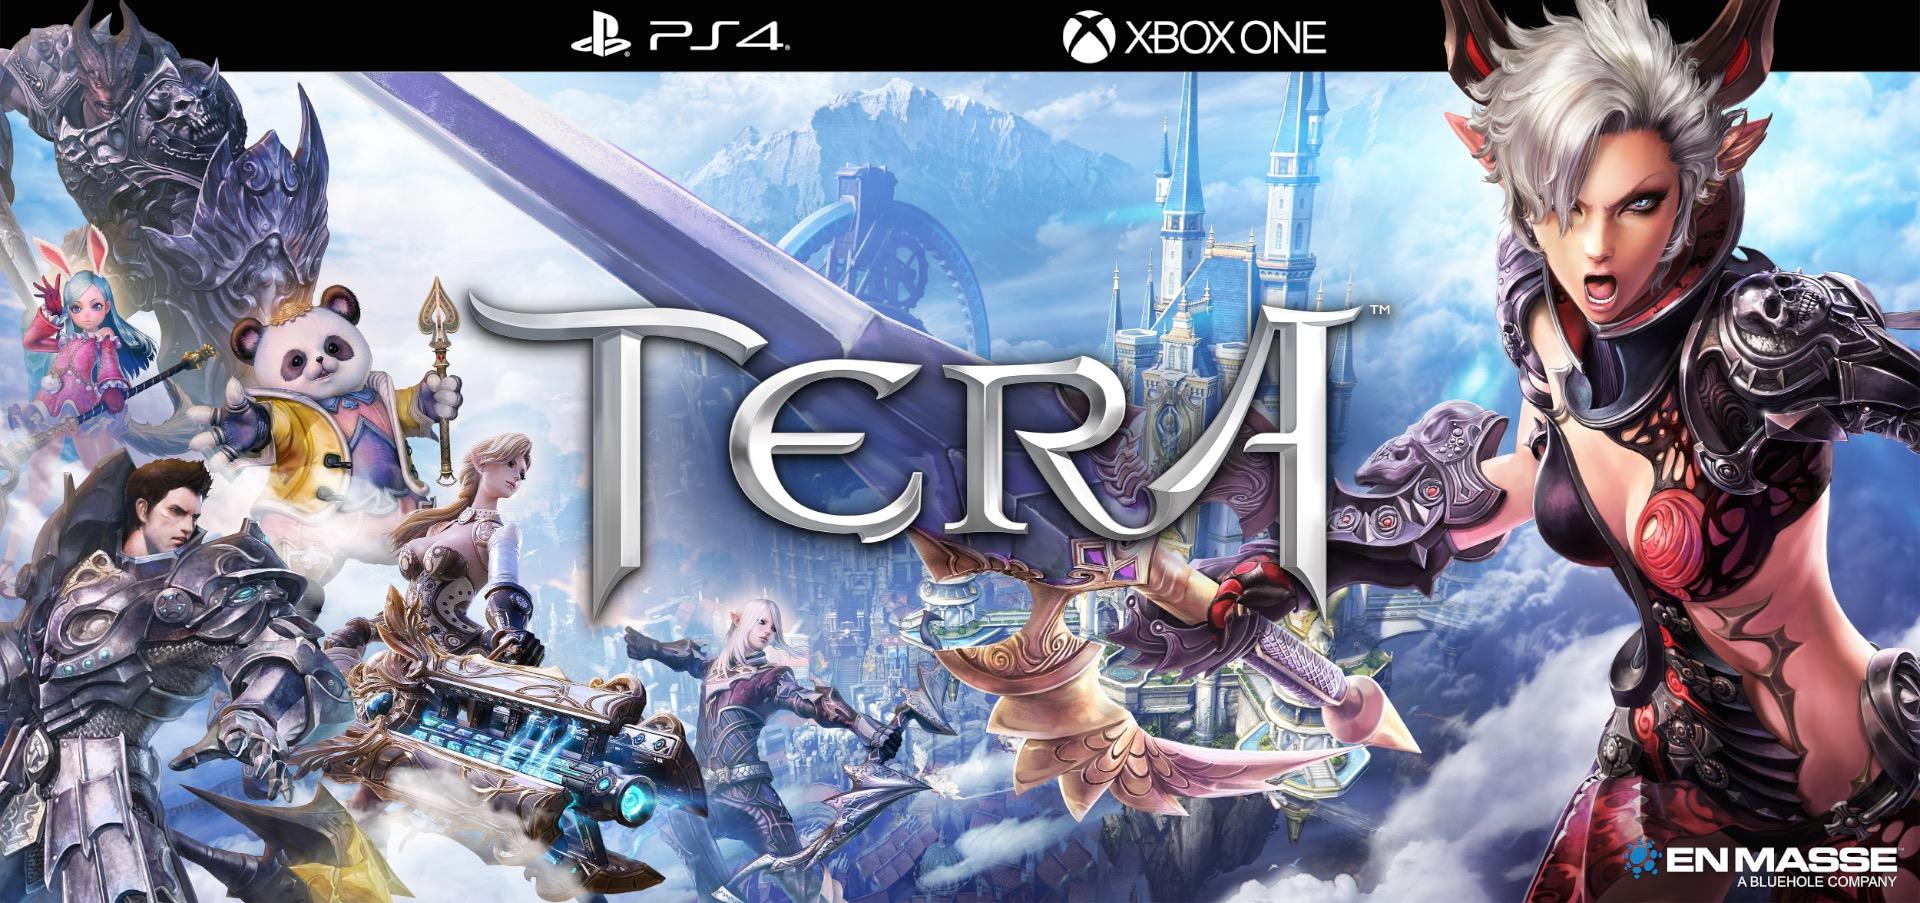 Tera Brings Mmo Action To Xbox One Next Week Xbox One